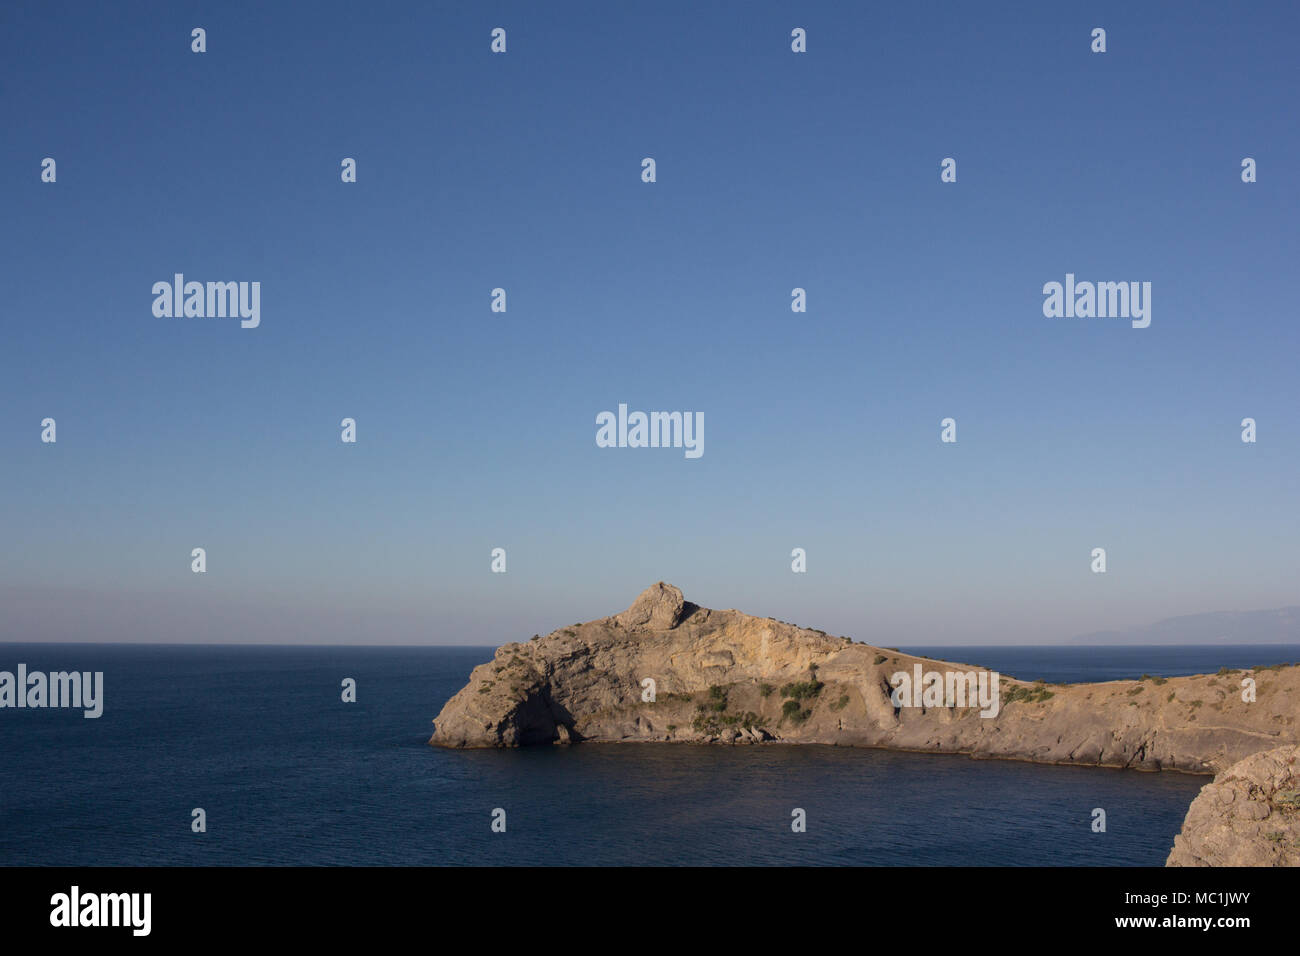 Stunning views of the sea on a calm clear day. Landscape. Stock Photo